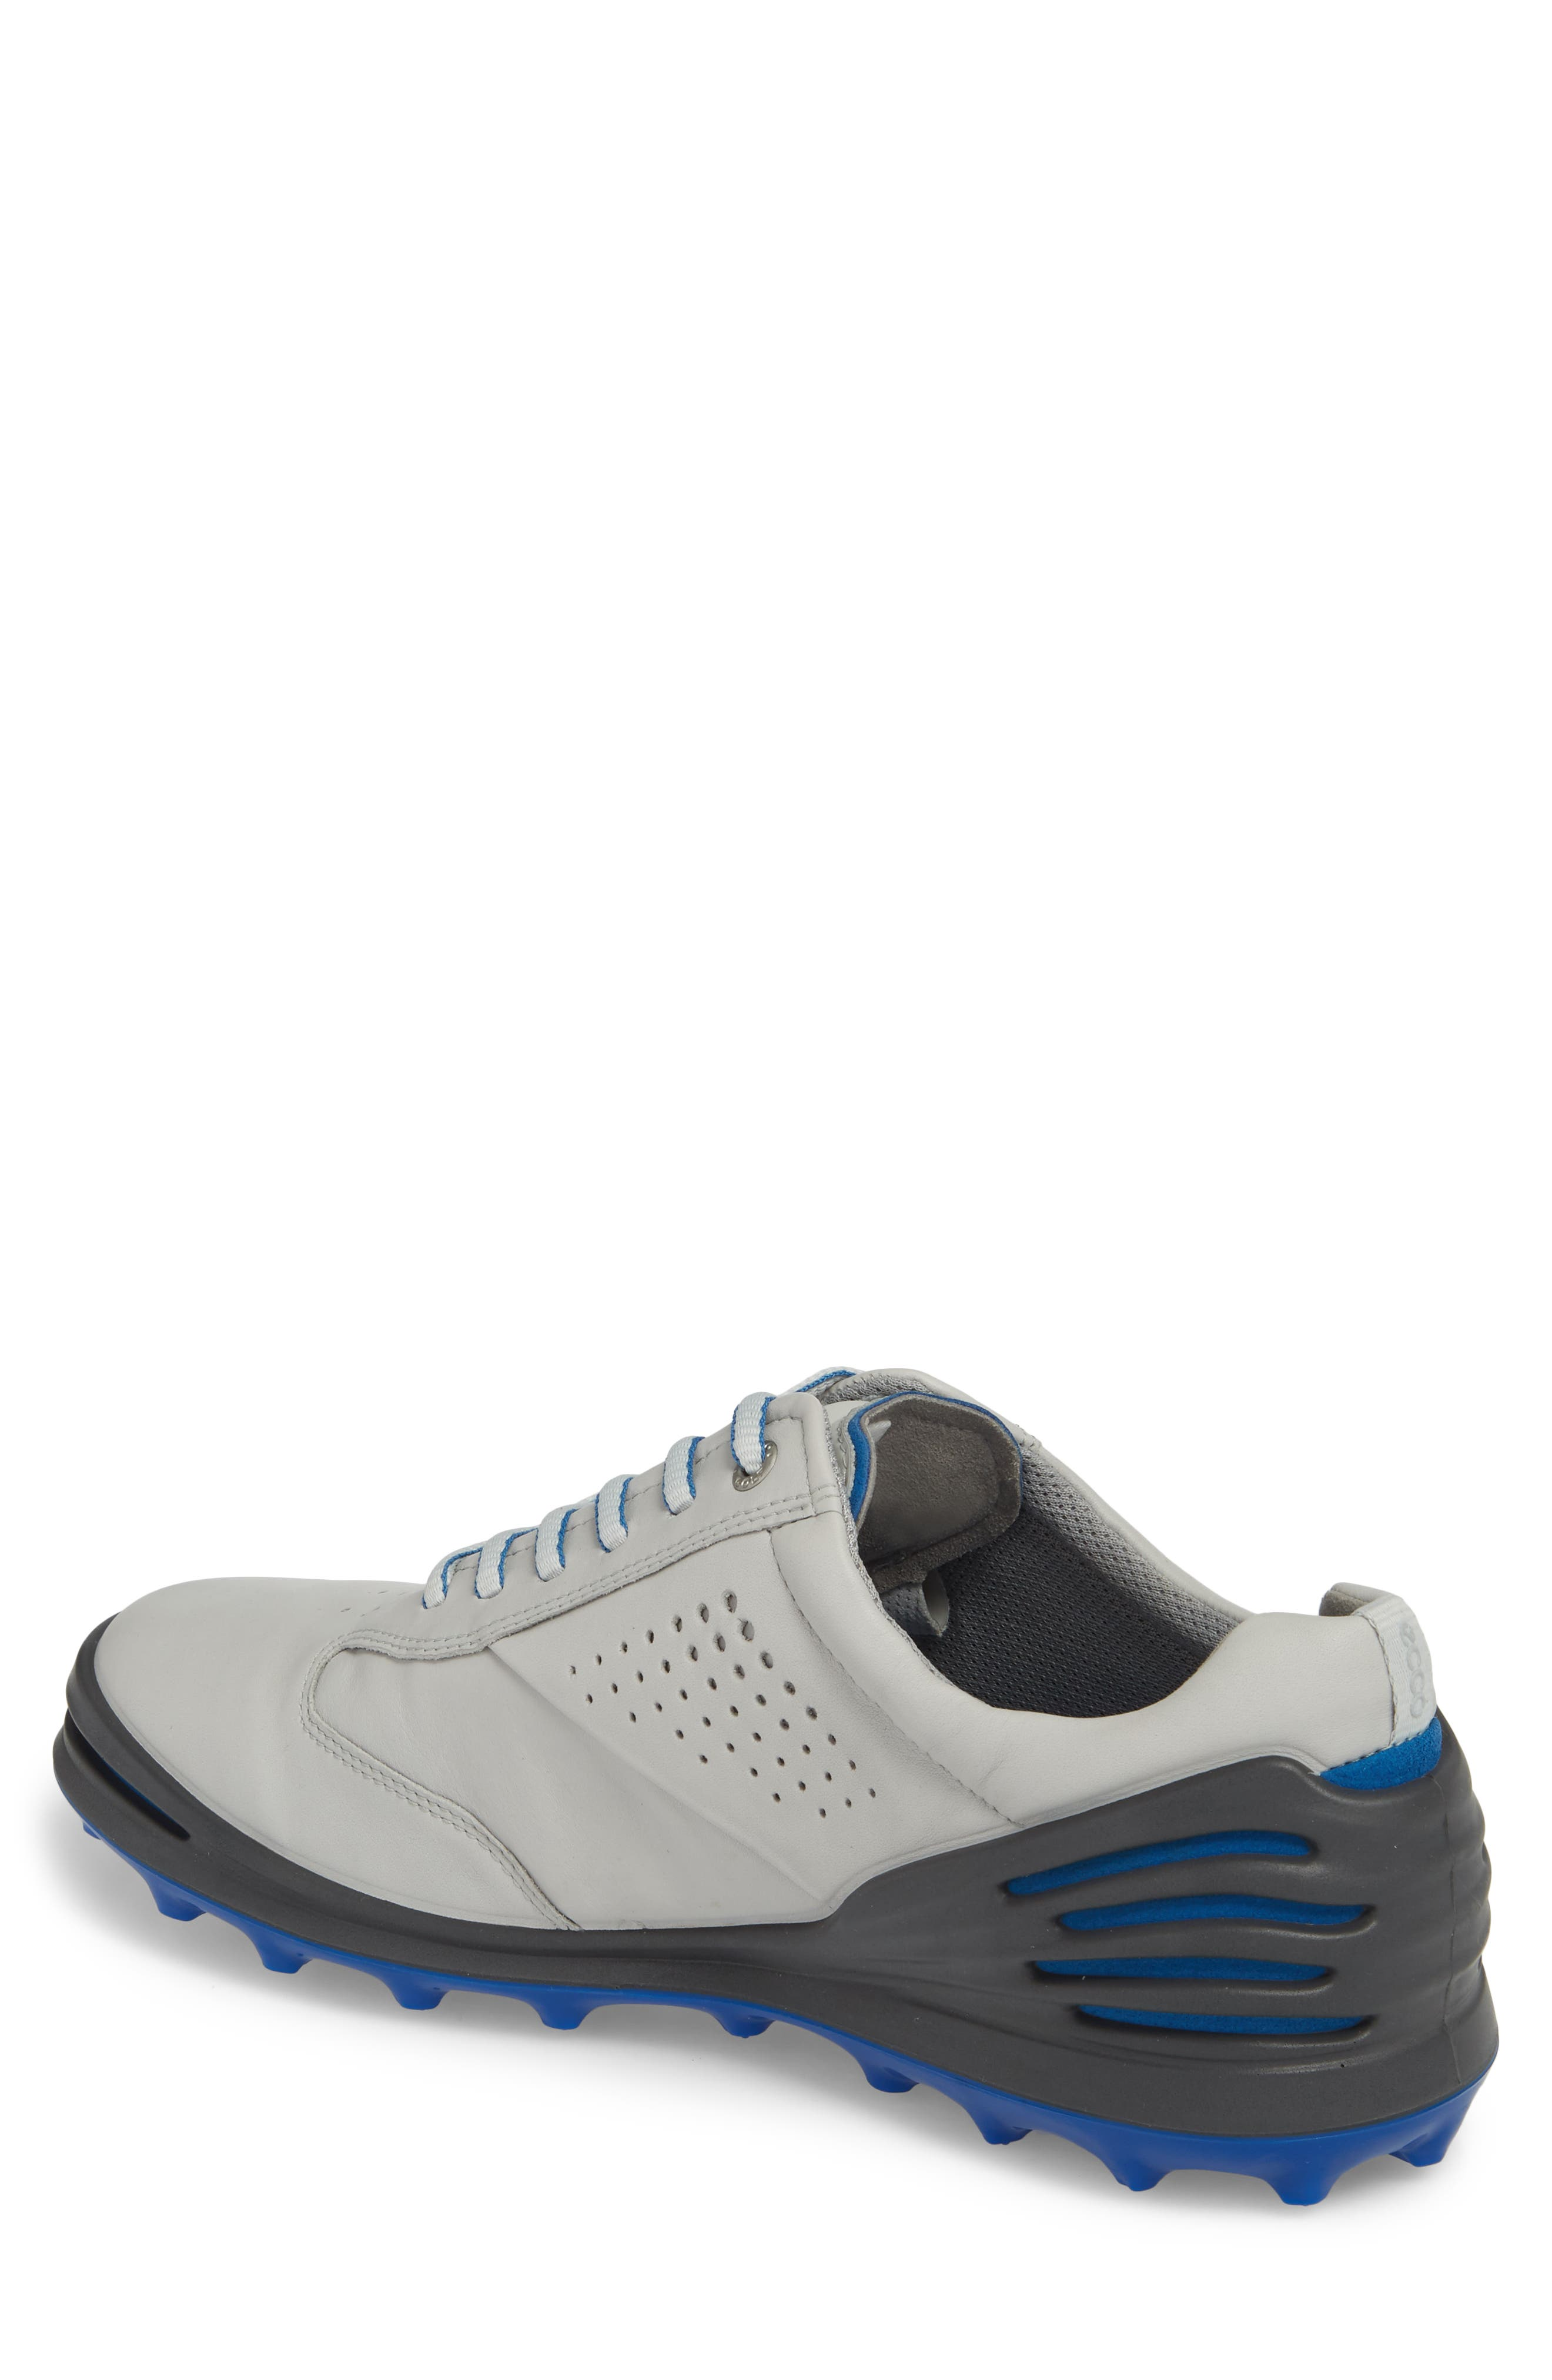 Cage Pro Golf Shoe,                             Alternate thumbnail 2, color,                             CONCRETE/ BERMUDA BLUE LEATHER